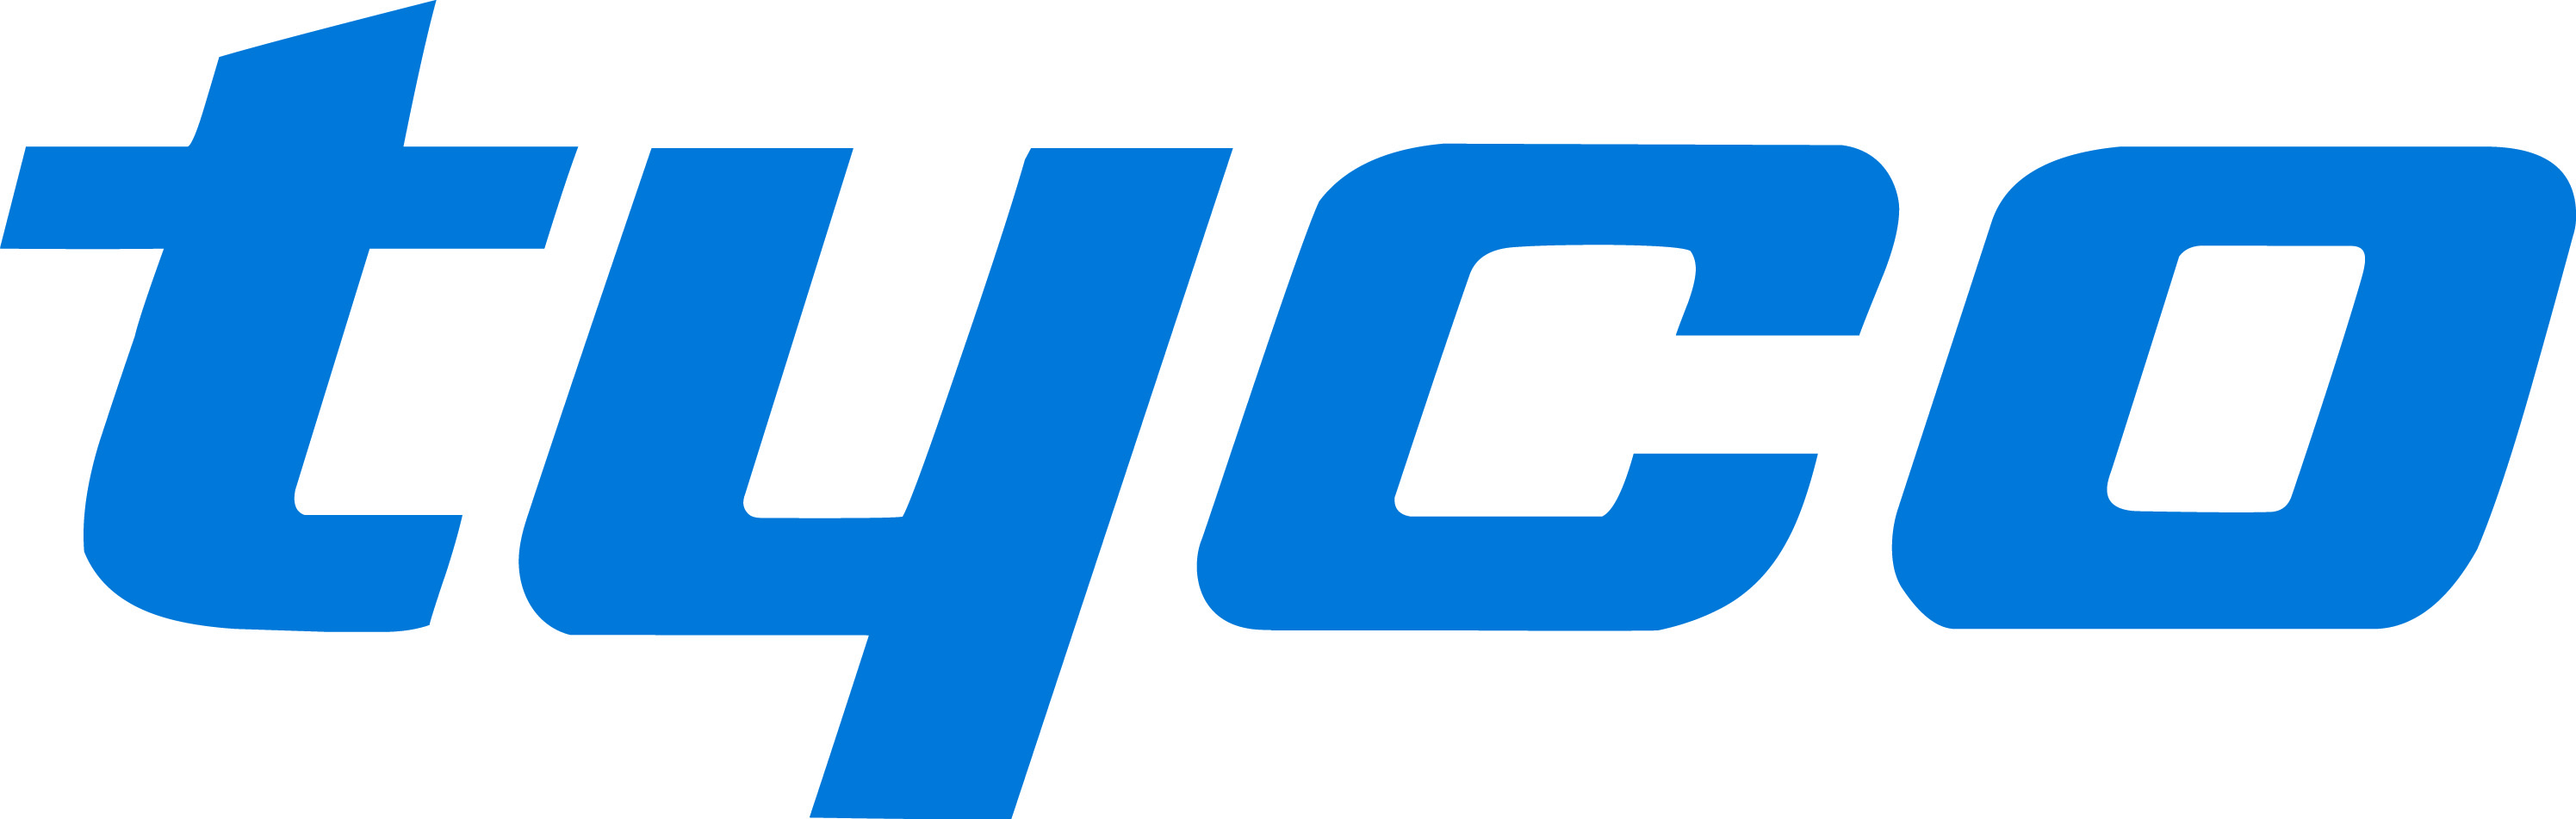 Tyco International Plc logo